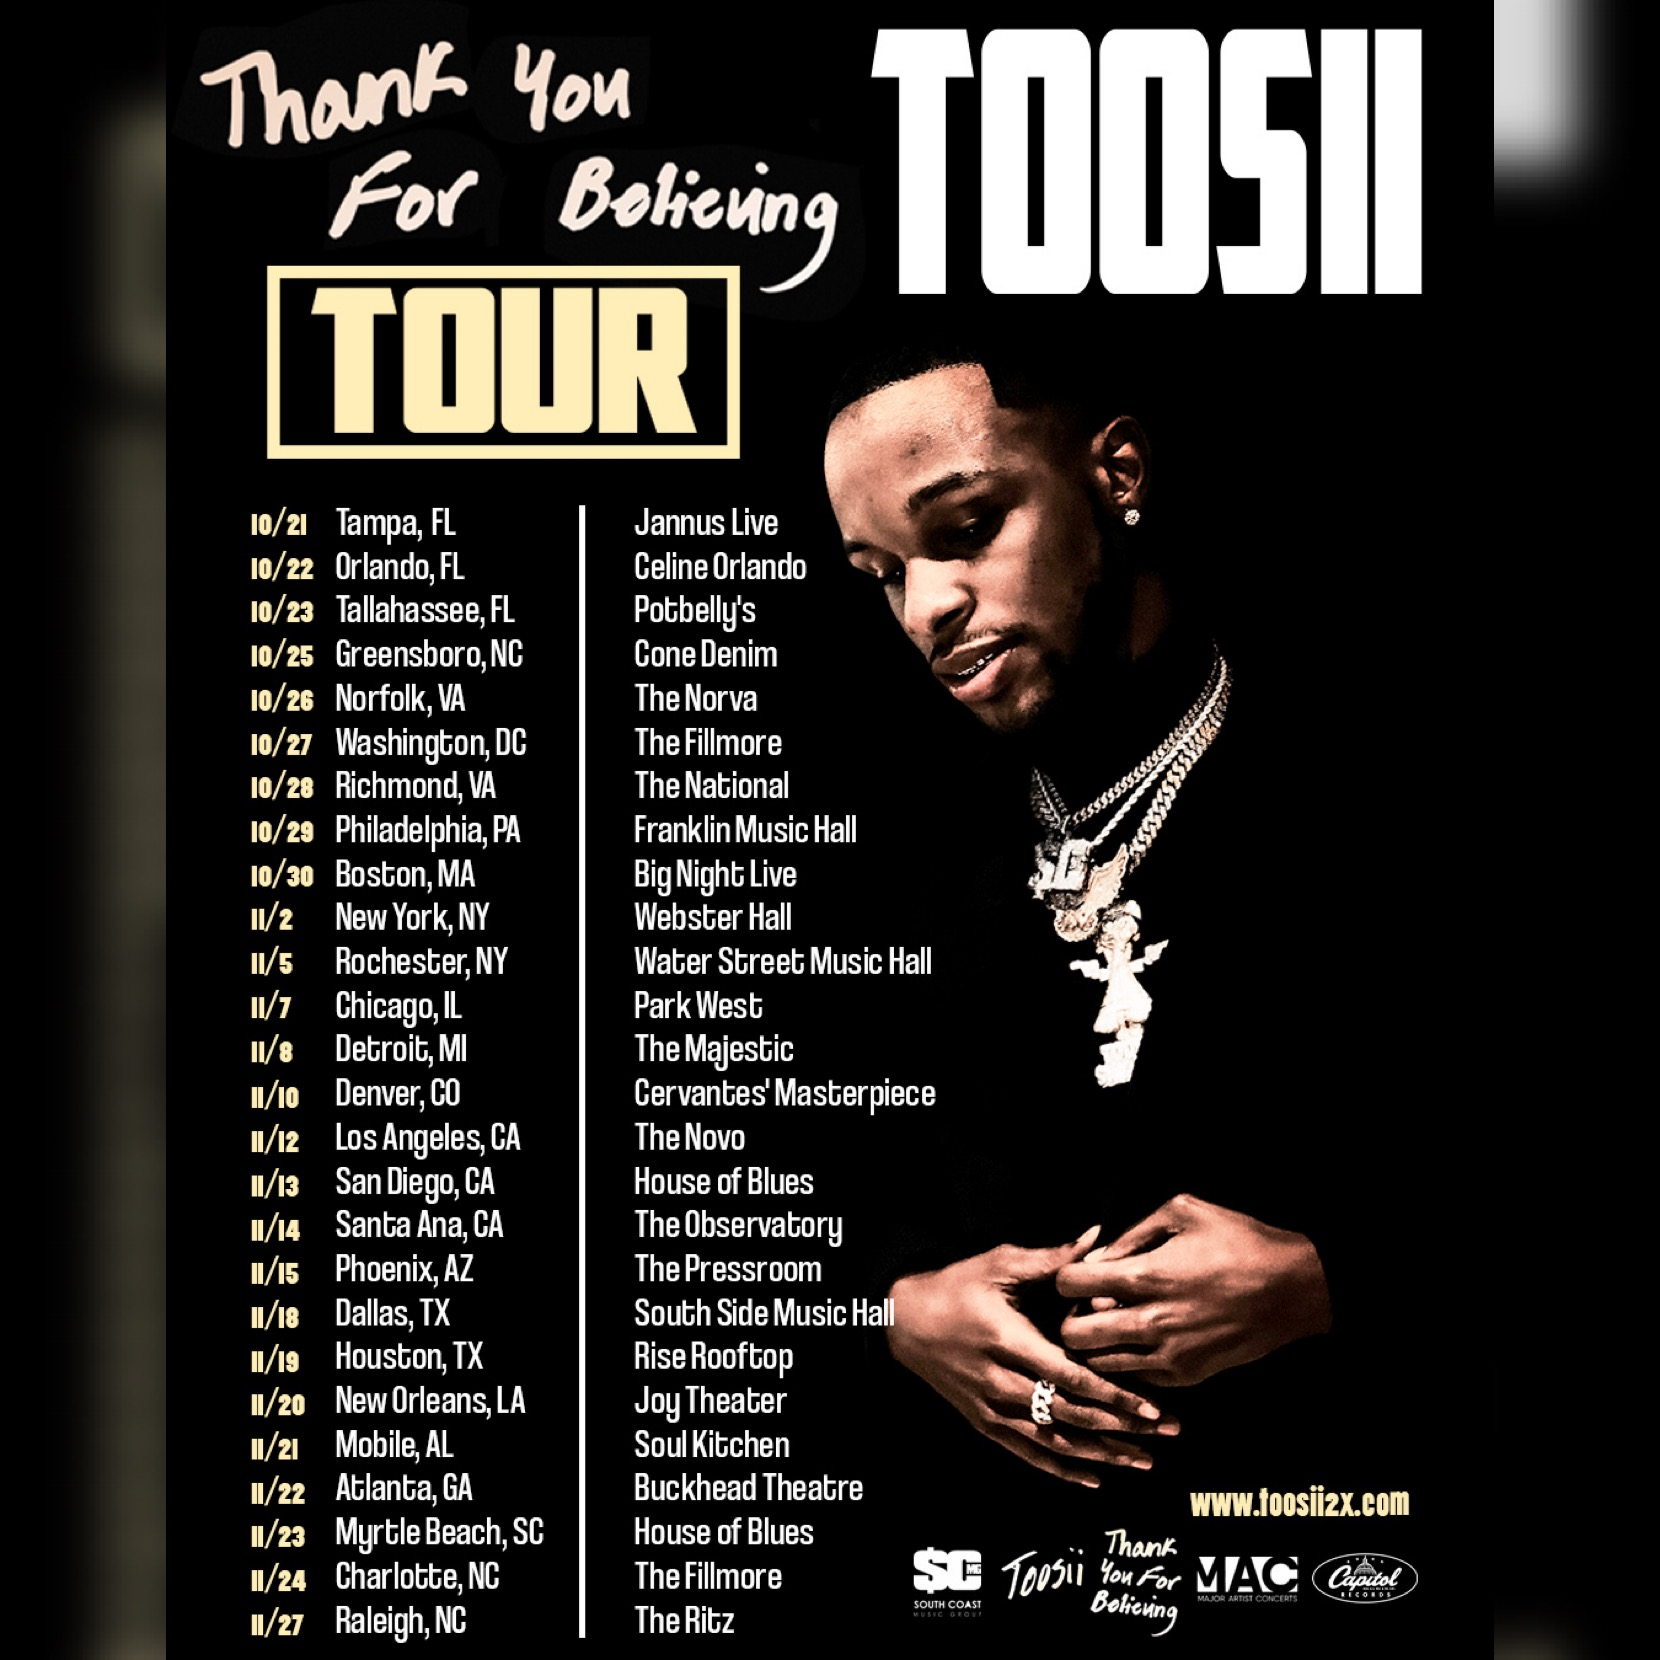 Toosii Tour Poster courtesy of Capitol Music group for use by 360 Magazine